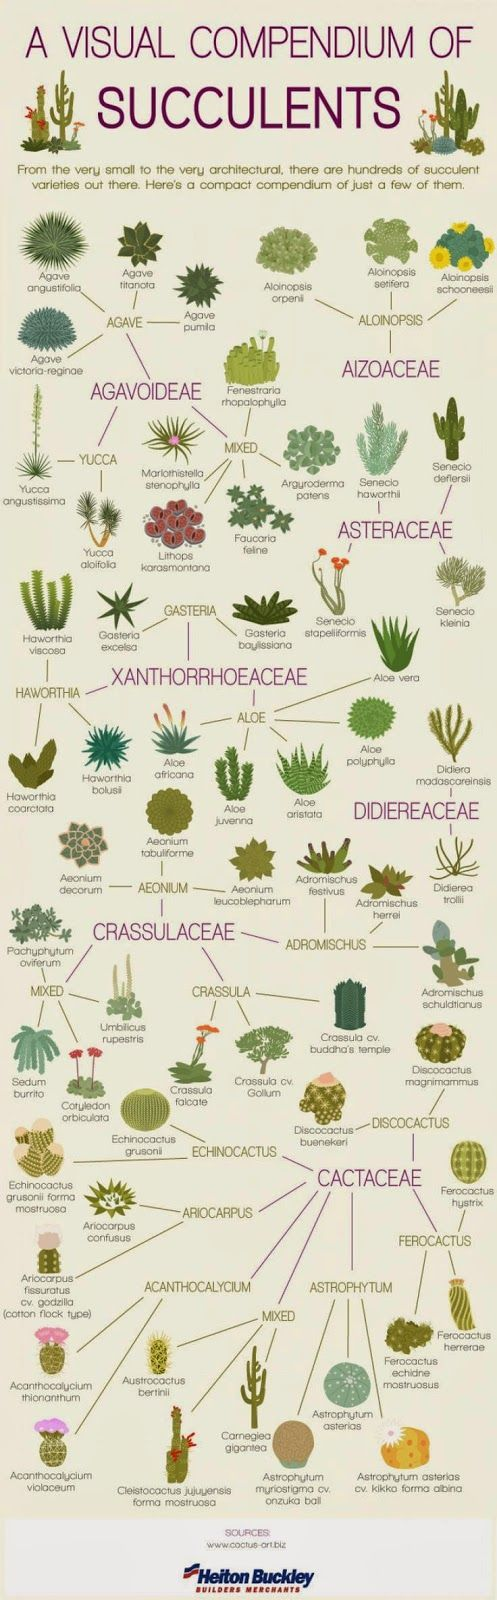 A Visual Compendium of Succulents... ^ | For more Terrarium related pins, visit our Pinterest board: https://www.pinterest.com/makerskit/terrarium-art/